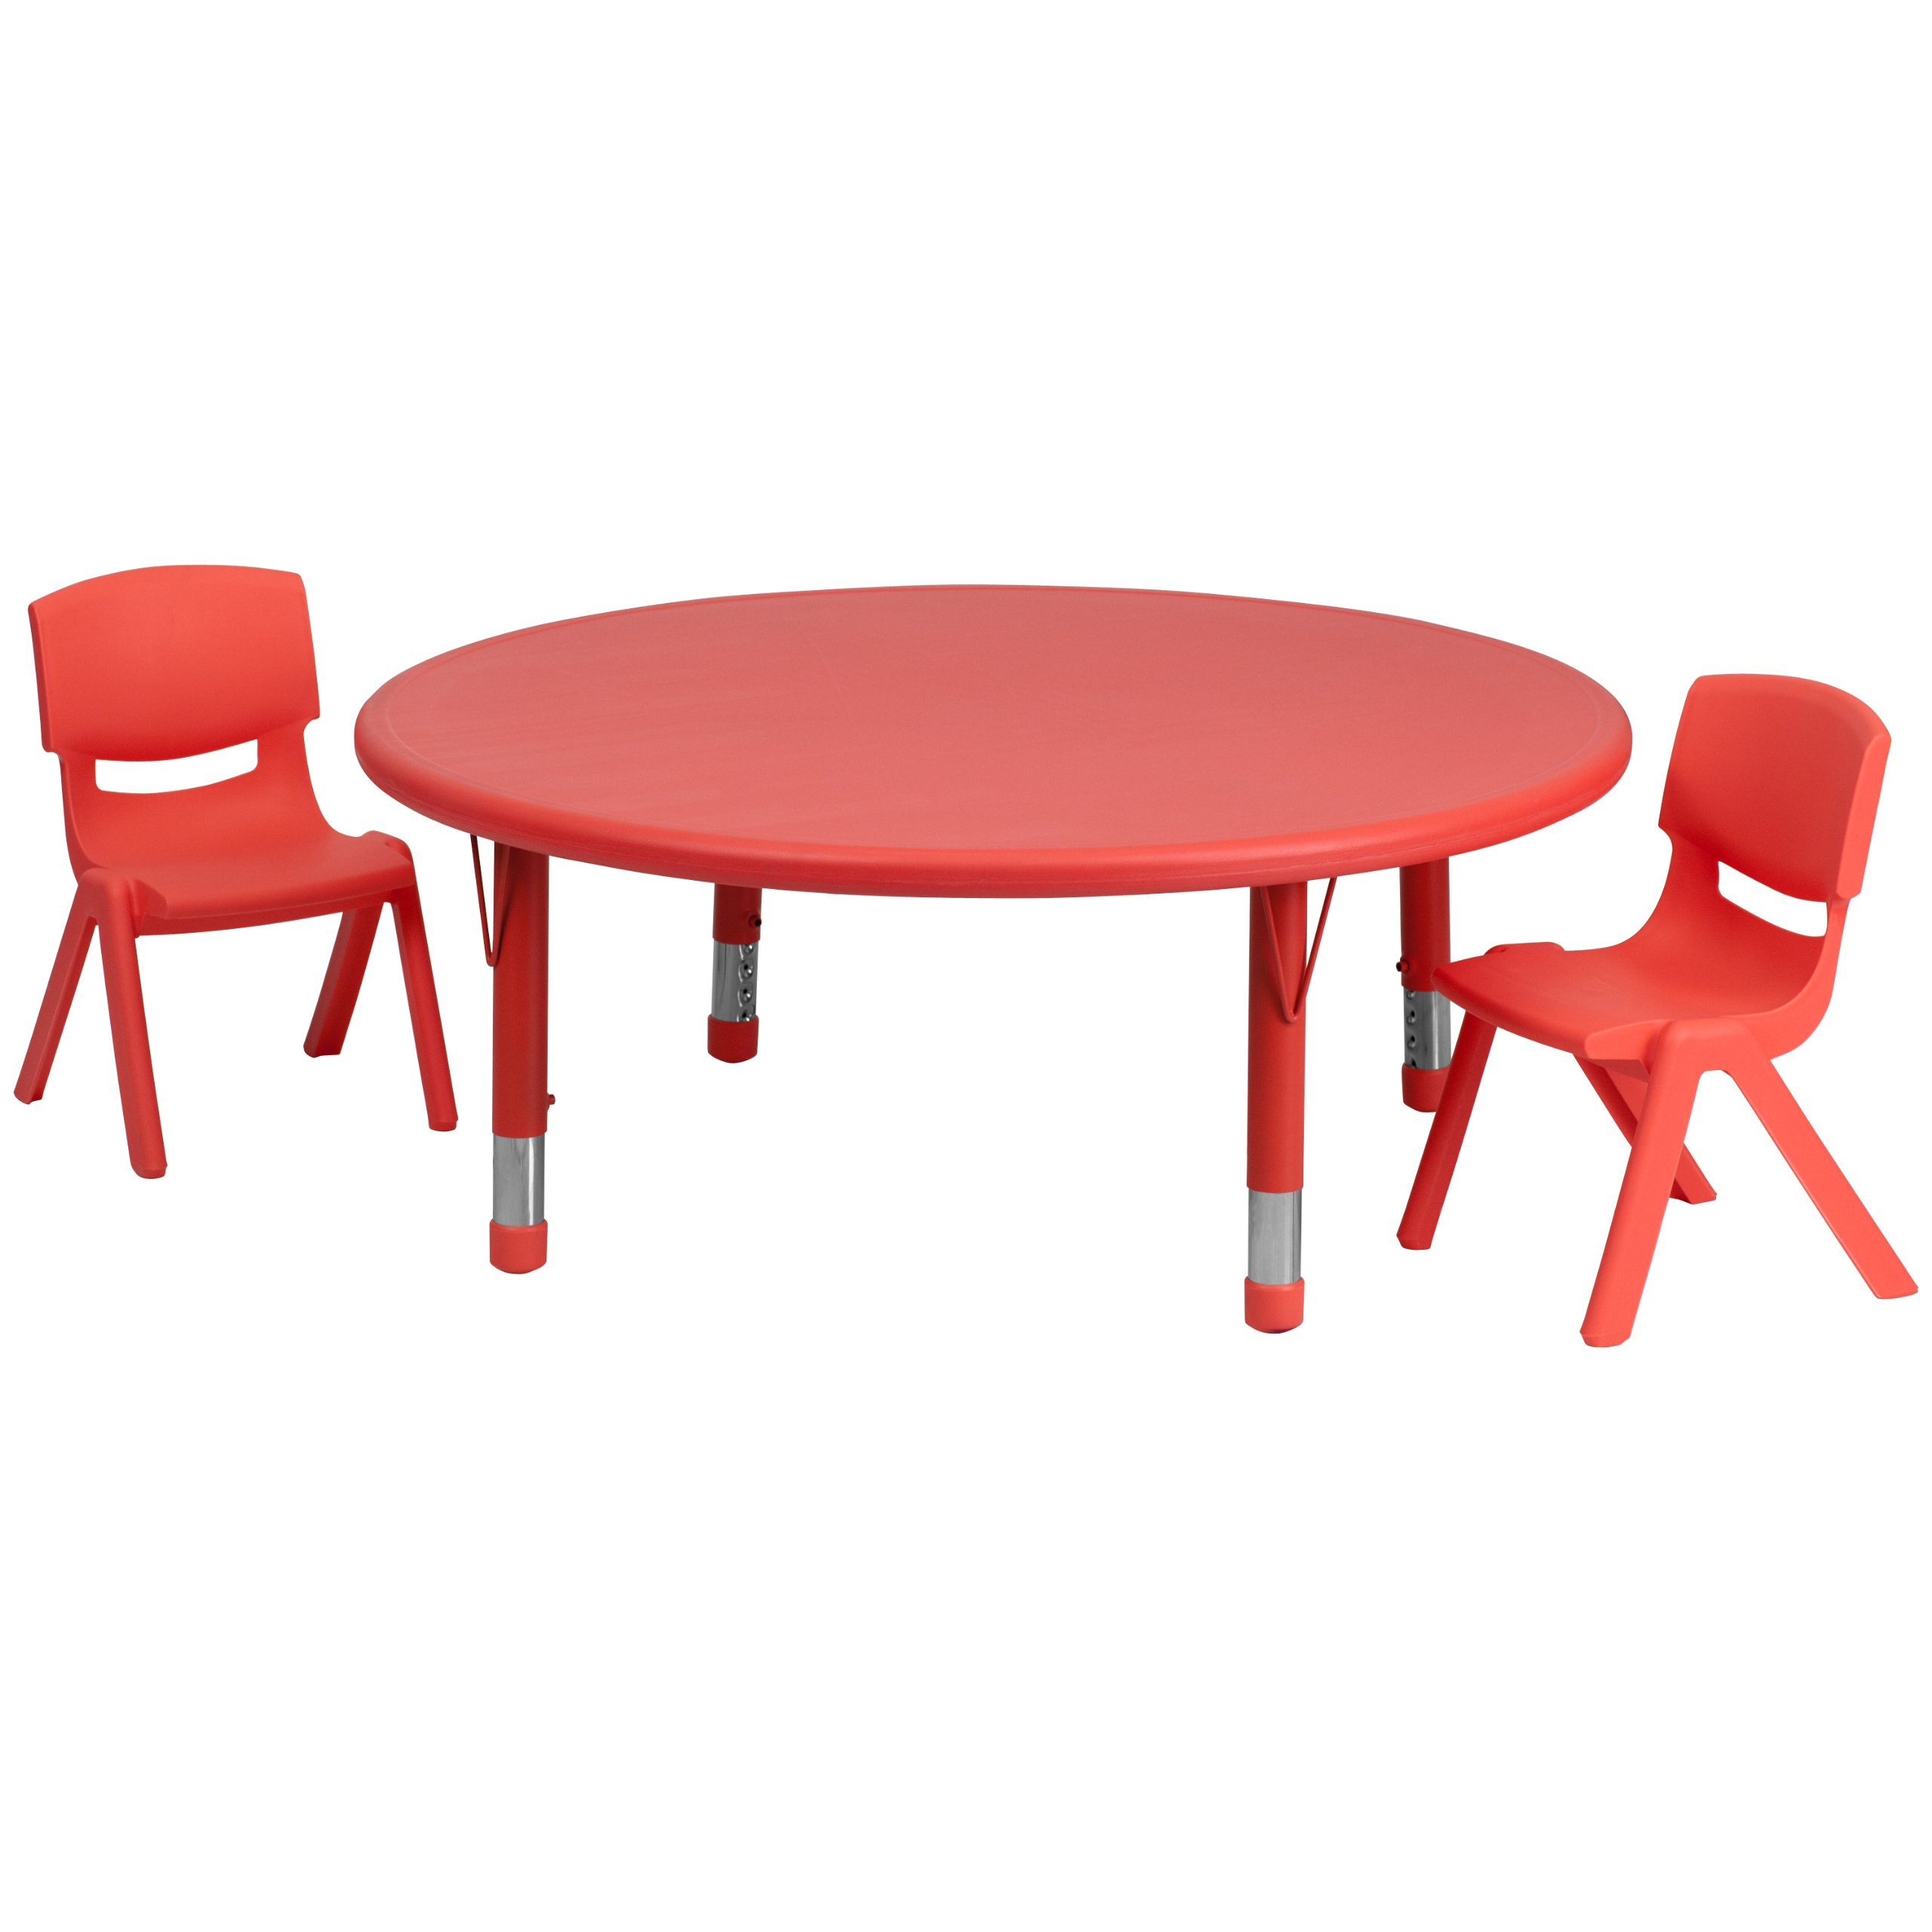 Flash Furniture 45'' Round Red Plastic Height Adjustable Activity Table Set with 2 Chairs